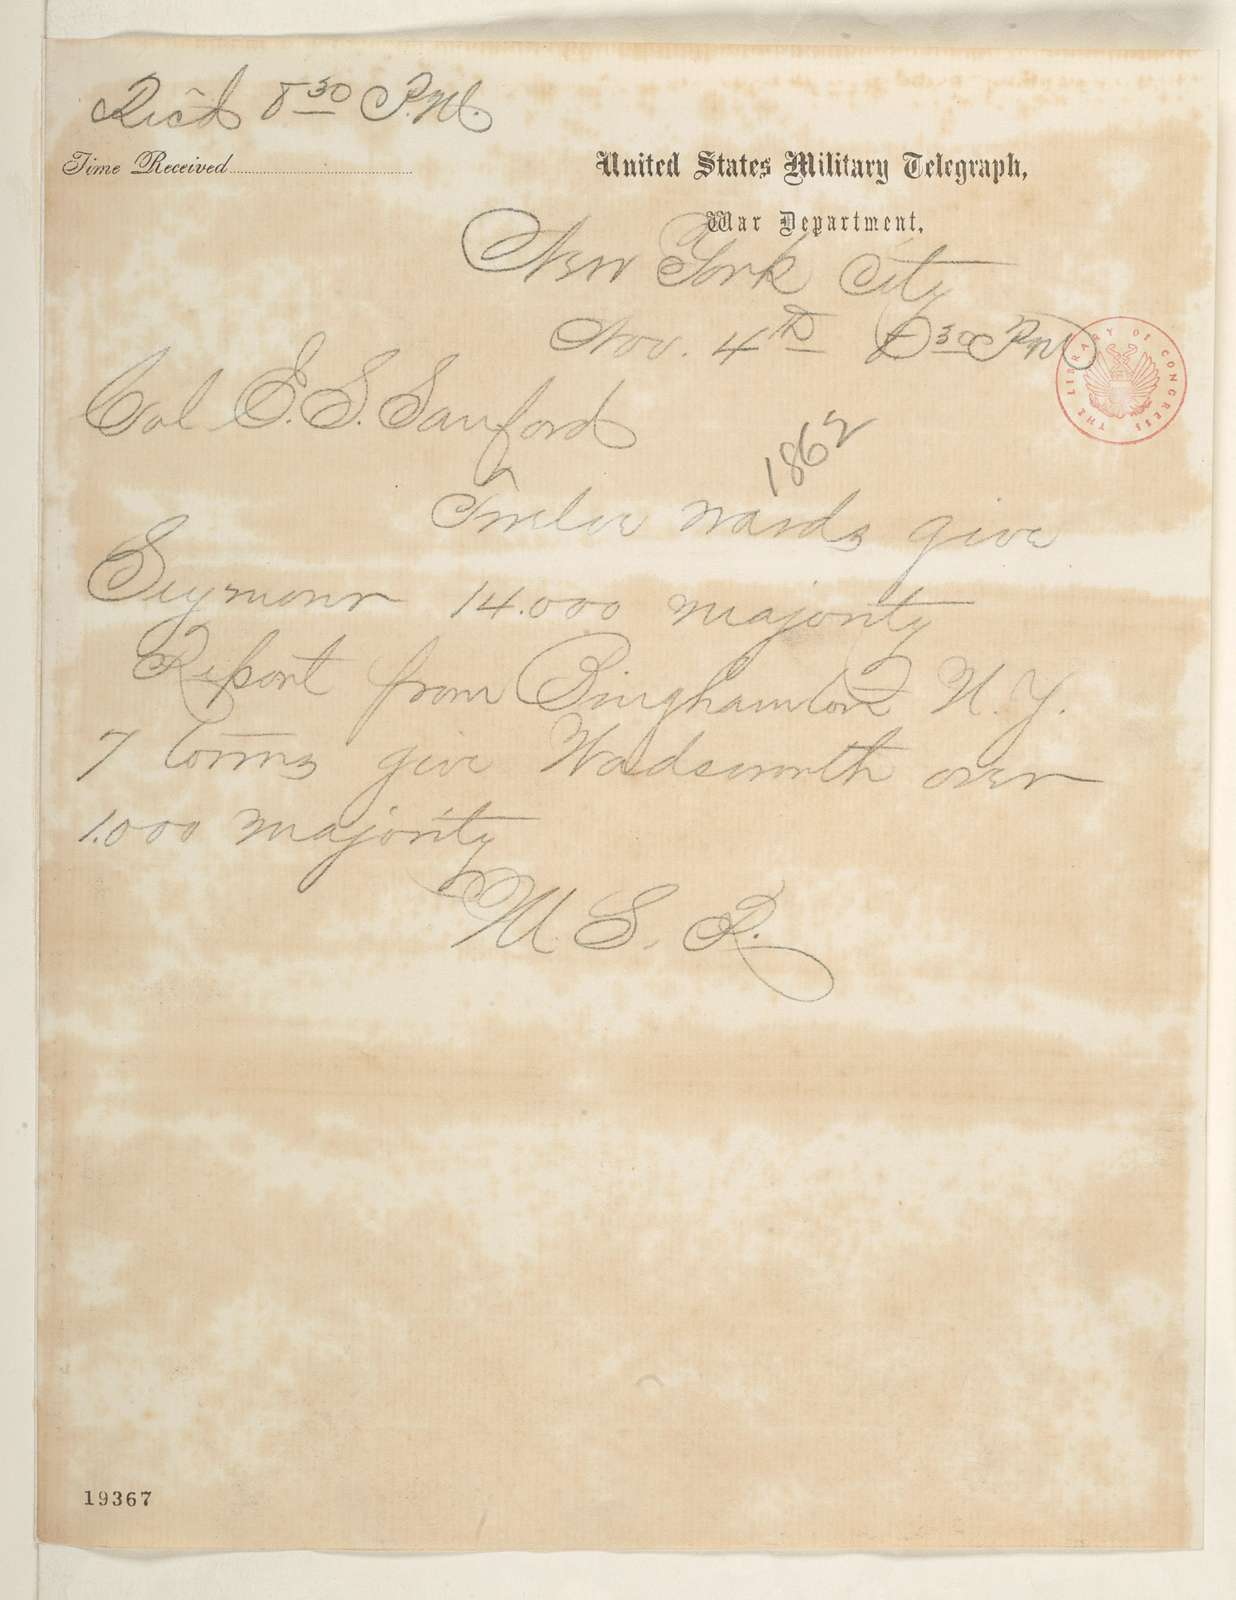 Abraham Lincoln papers: Series 1. General Correspondence. 1833-1916: William S. Roberts to Edward S. Sanford, Tuesday, November 04, 1862 (Telegram reporting New York election results)